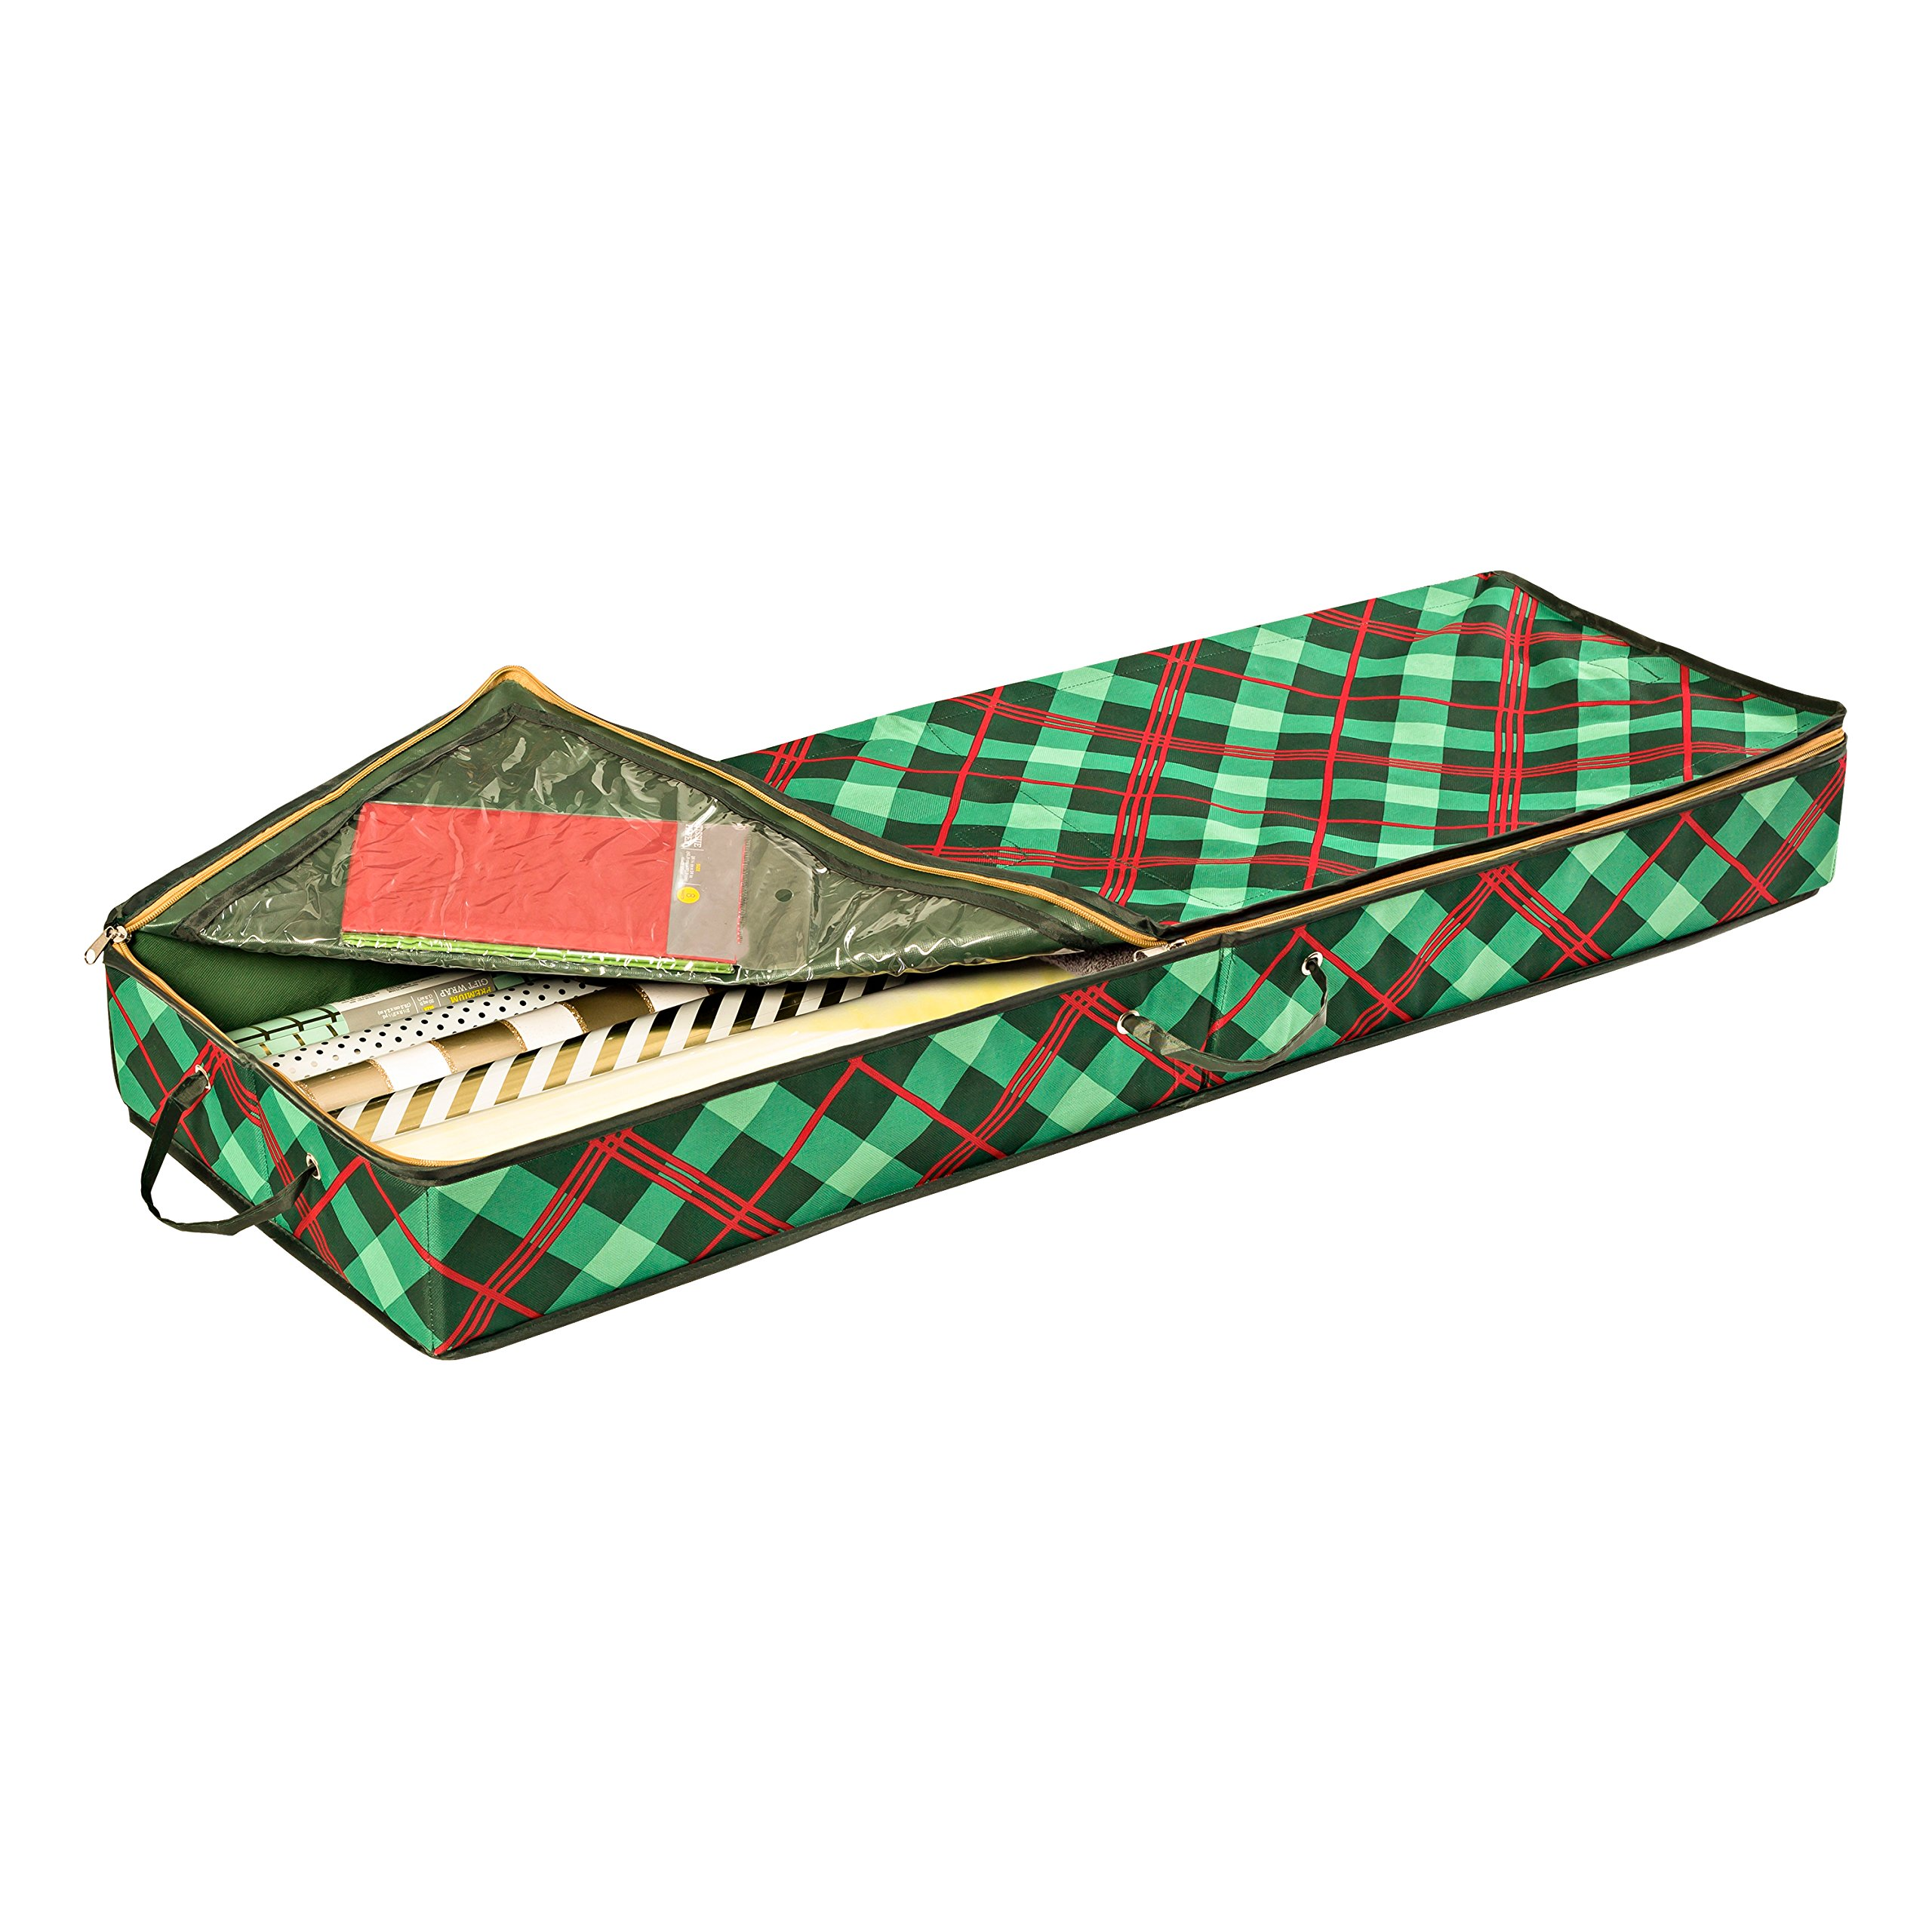 Honey-Can-Do SFT-07749 Plaid Gift Wrap Organizer